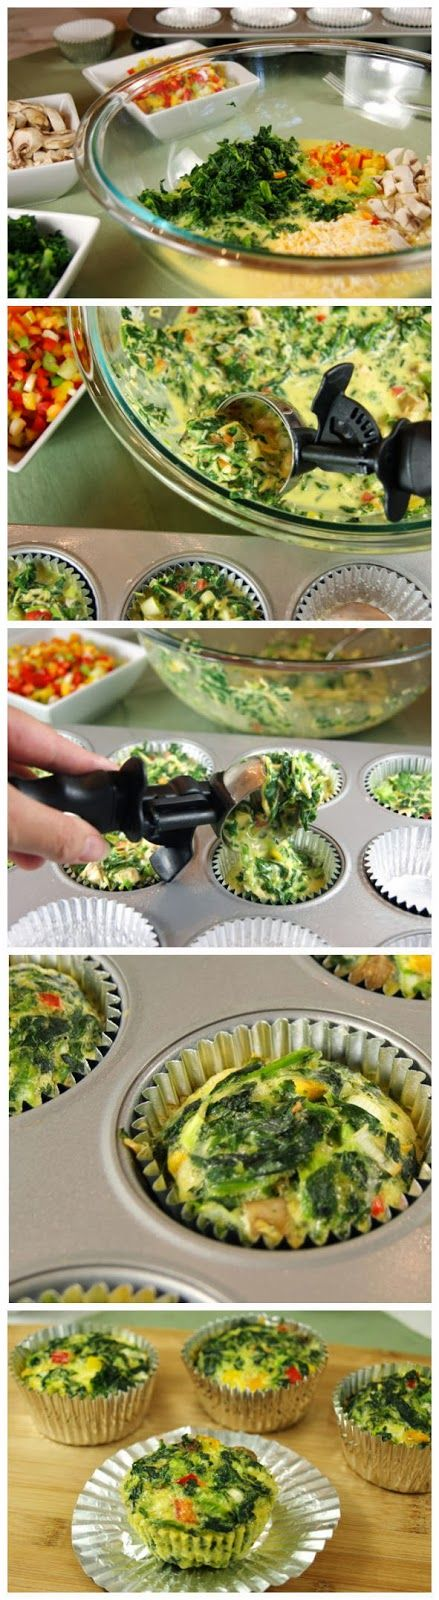 Vegetable Quiche Cups To-Go: Healthy, quick and easy recipe that makes 12 muffin sized quiches. Great for lunches, snacks or to freeze. Full recipe @ http://www.thekitchenismyplayground.com/2012/10/individual-veggie-quiche-cups-to-go.html | The Micro Gardener